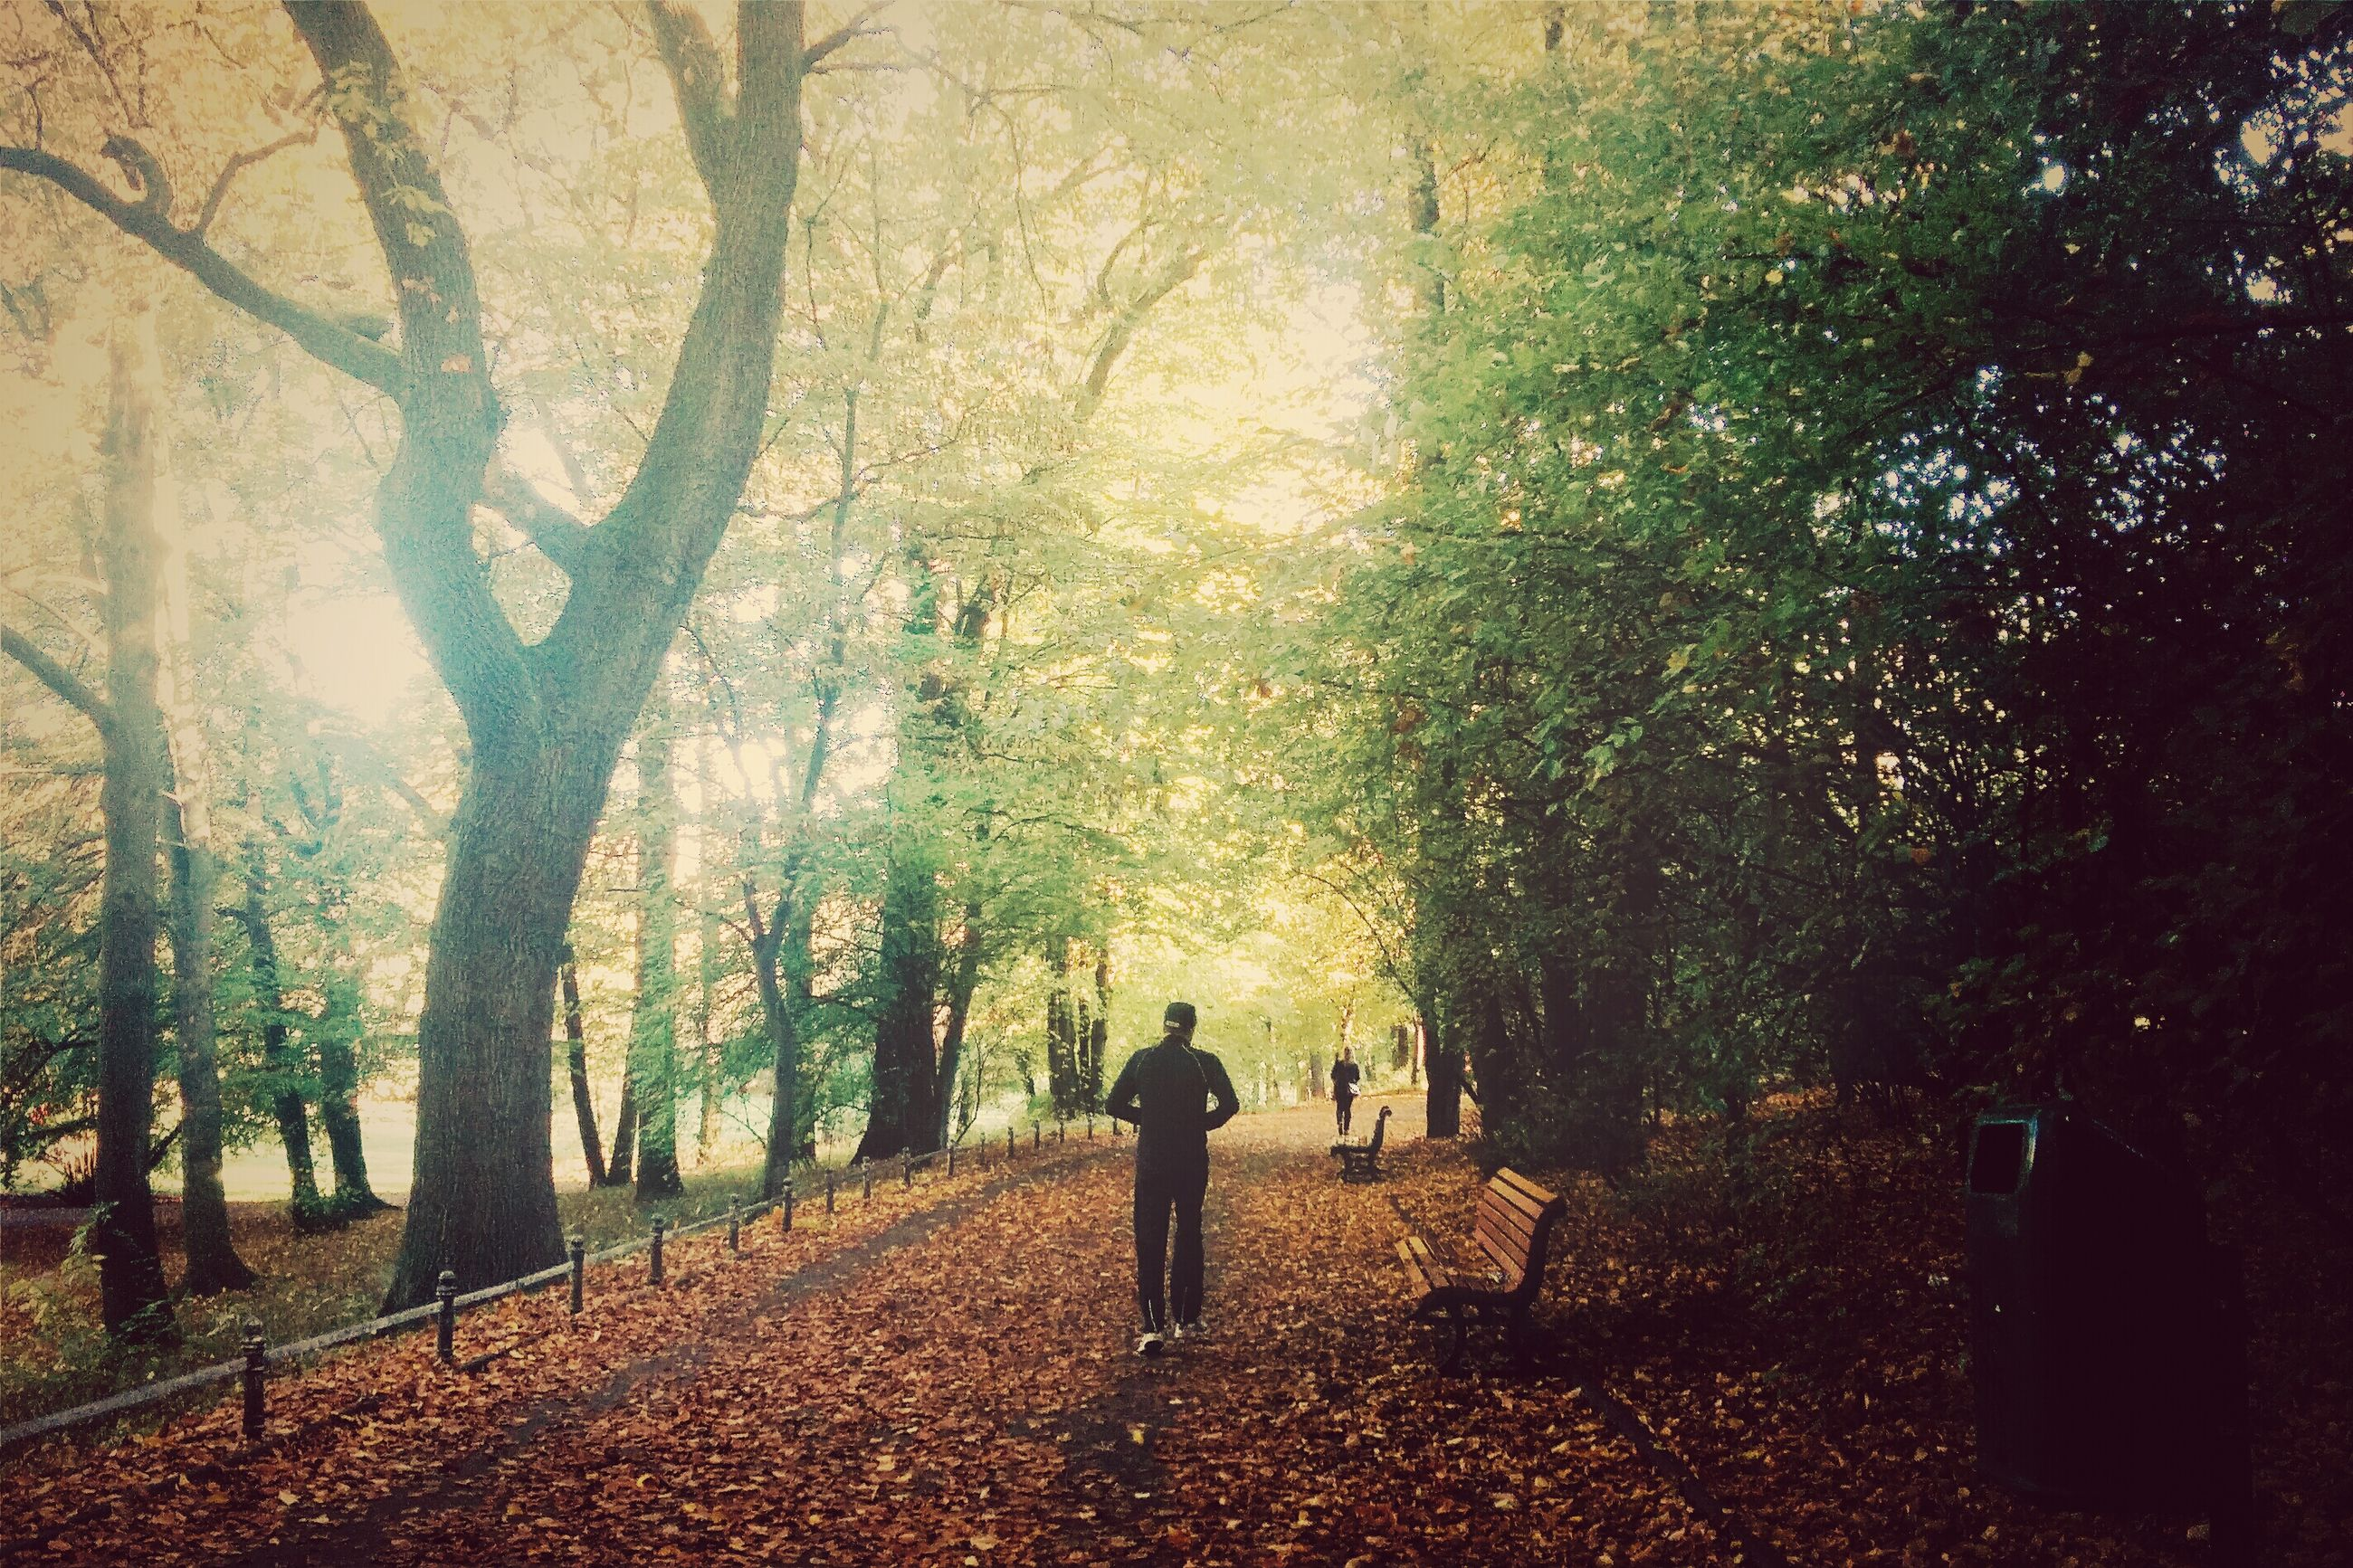 tree, lifestyles, walking, leisure activity, men, autumn, rear view, growth, nature, person, change, tree trunk, full length, standing, leaf, footpath, season, outdoors